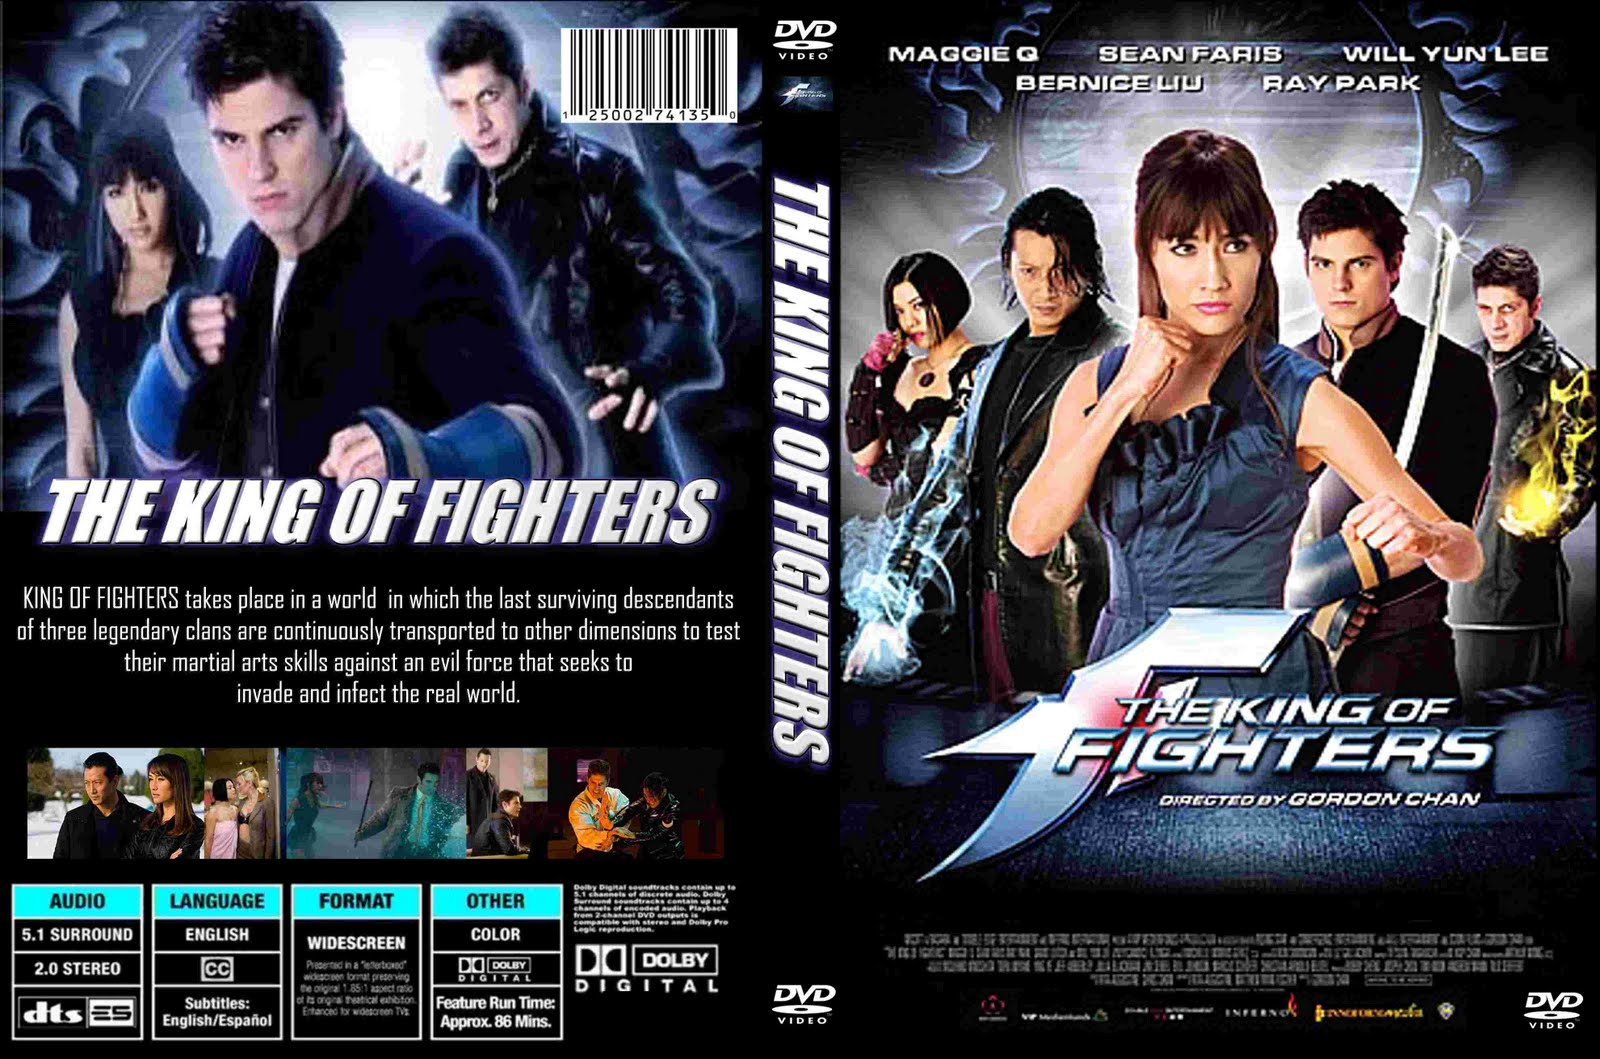 http://4.bp.blogspot.com/_GwLUt18Gn1k/TKCUBWQon7I/AAAAAAAABMQ/8Sr429RrQew/s1600/The_King_Of_Fighters_O_Filme.jpg